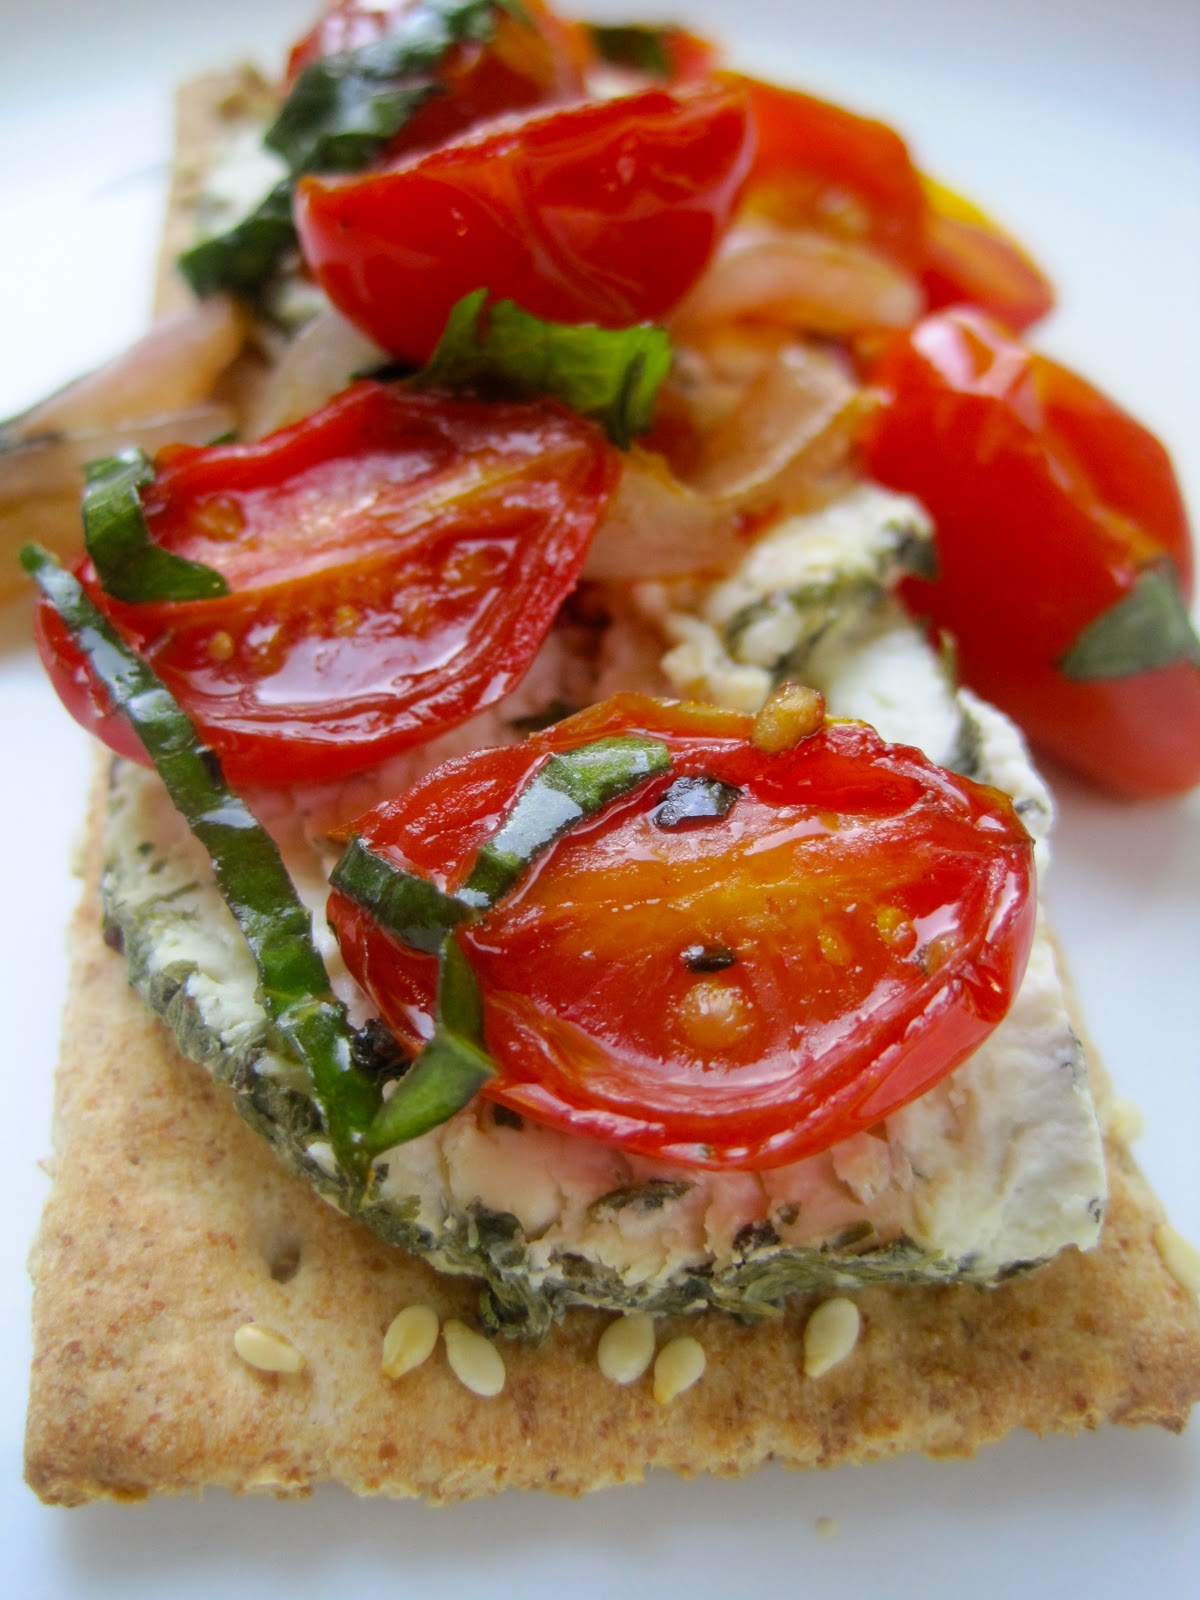 ... cracker topped with herbed goat cheese and warm, roasted tomato sauce